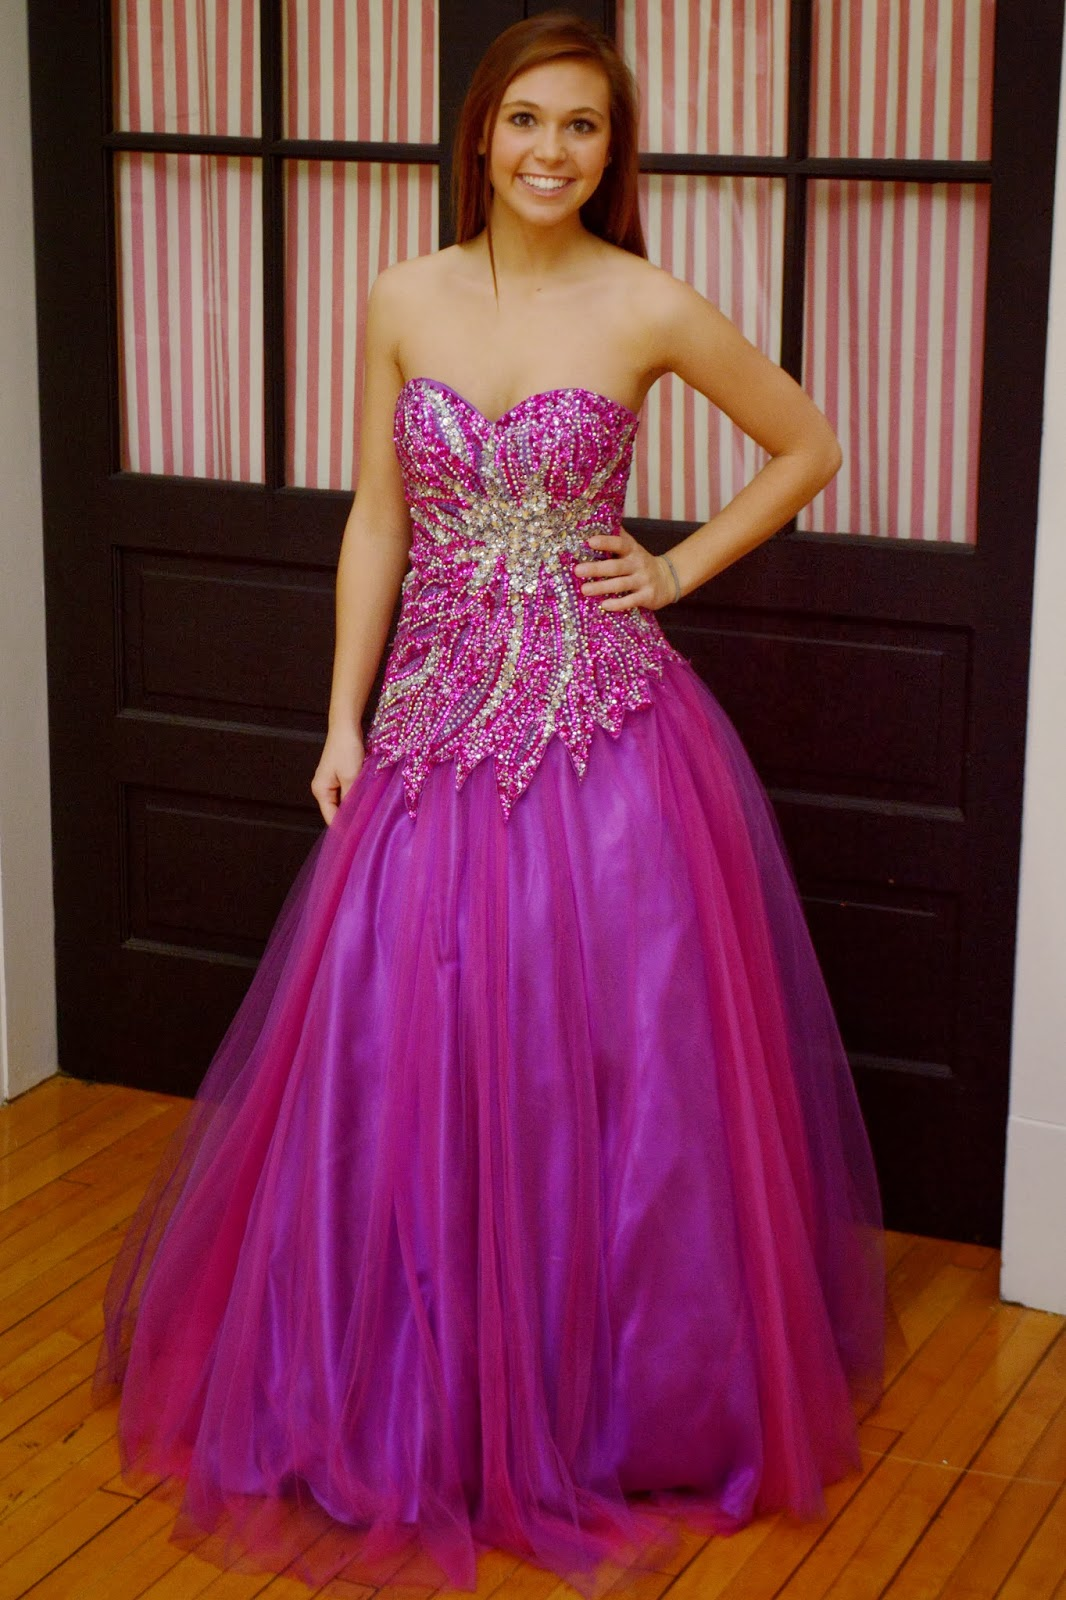 Premiere Couture\'s Blog: Prom 2014